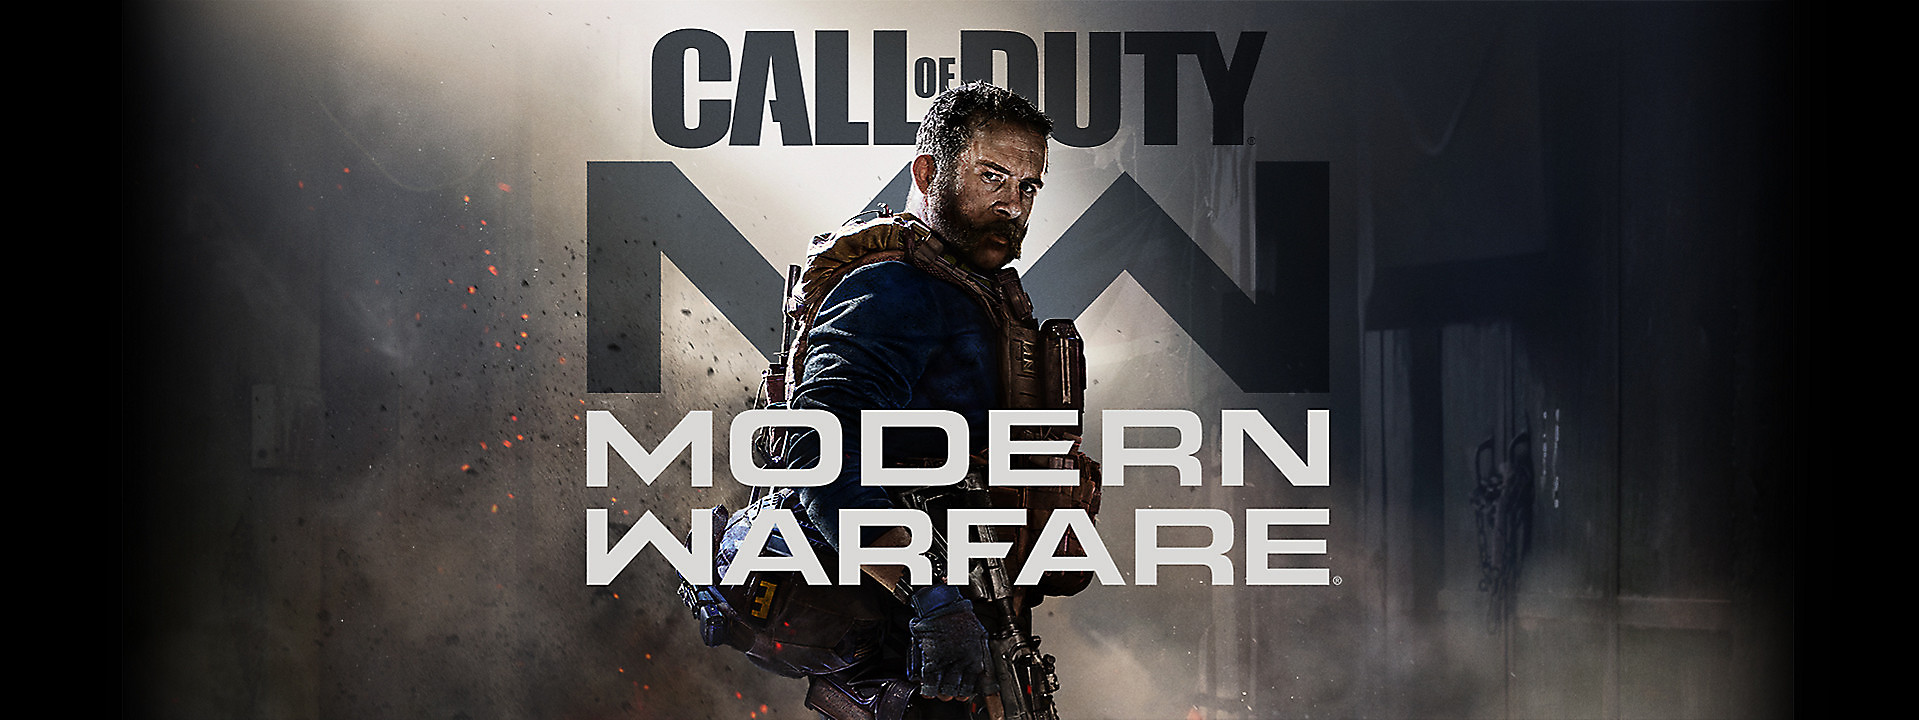 call-of-duty-modern-warfare-hero-banner-